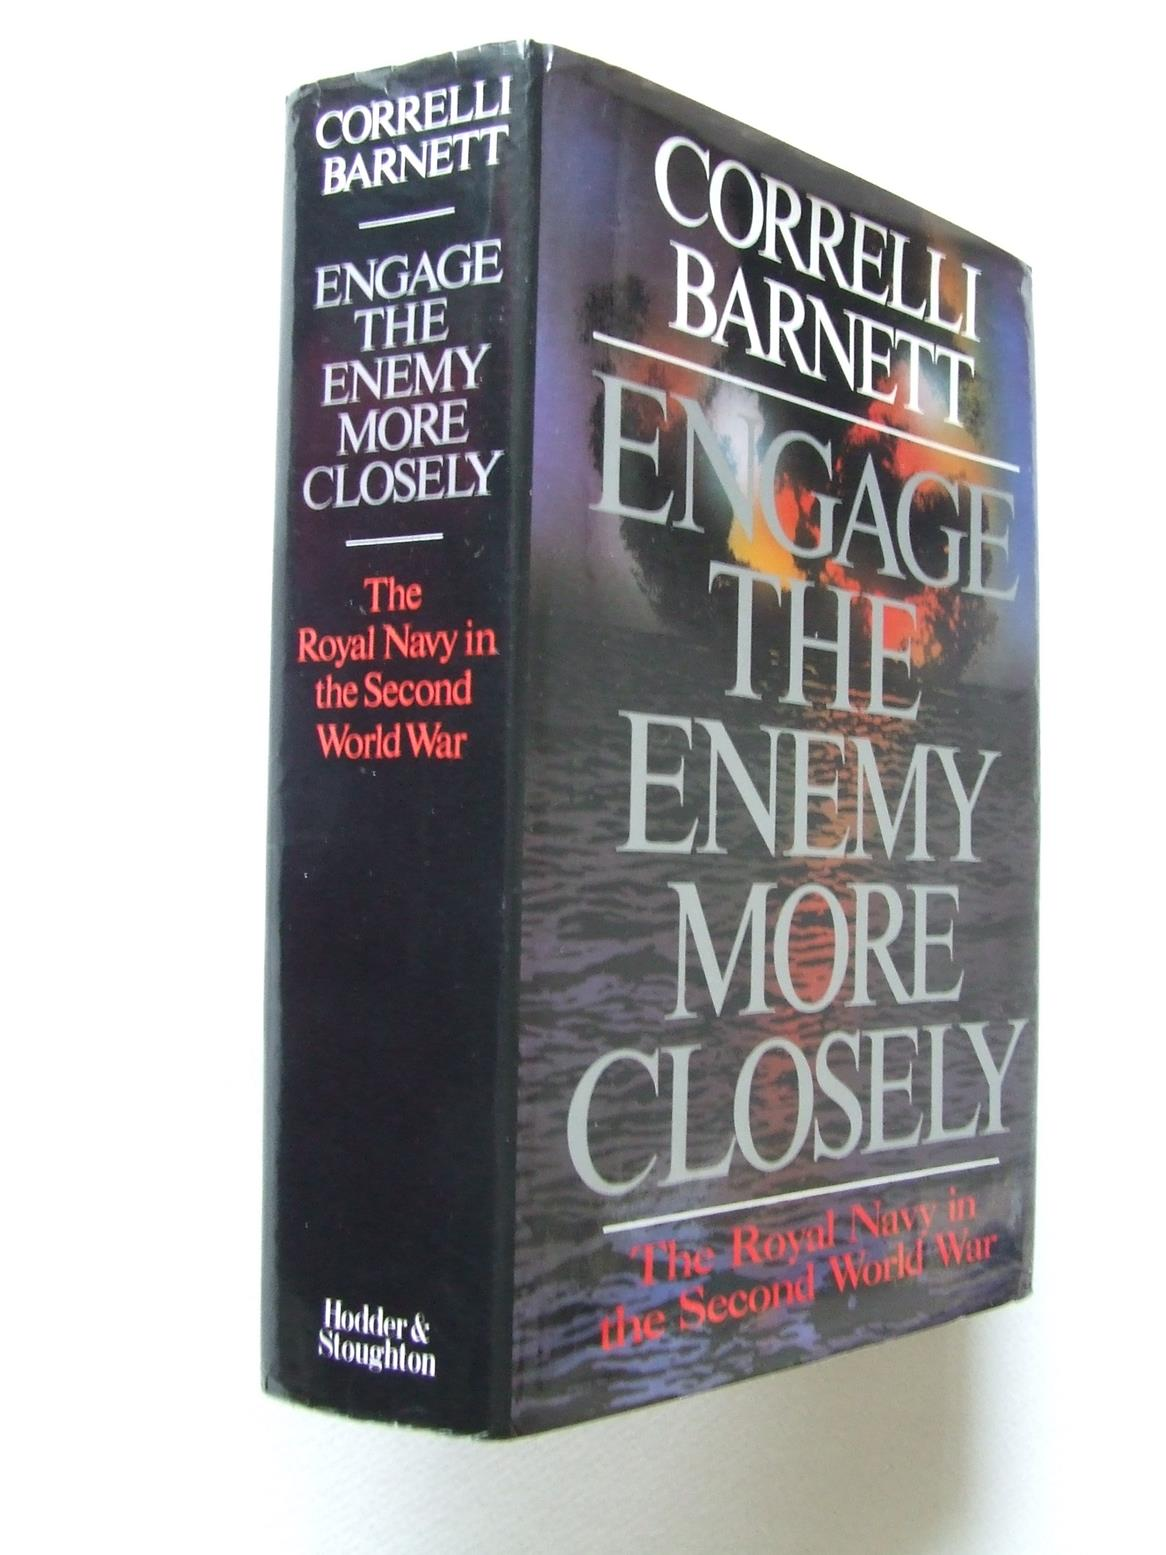 Engage the Enemy More Closely, the Royal Navy in the Second World War